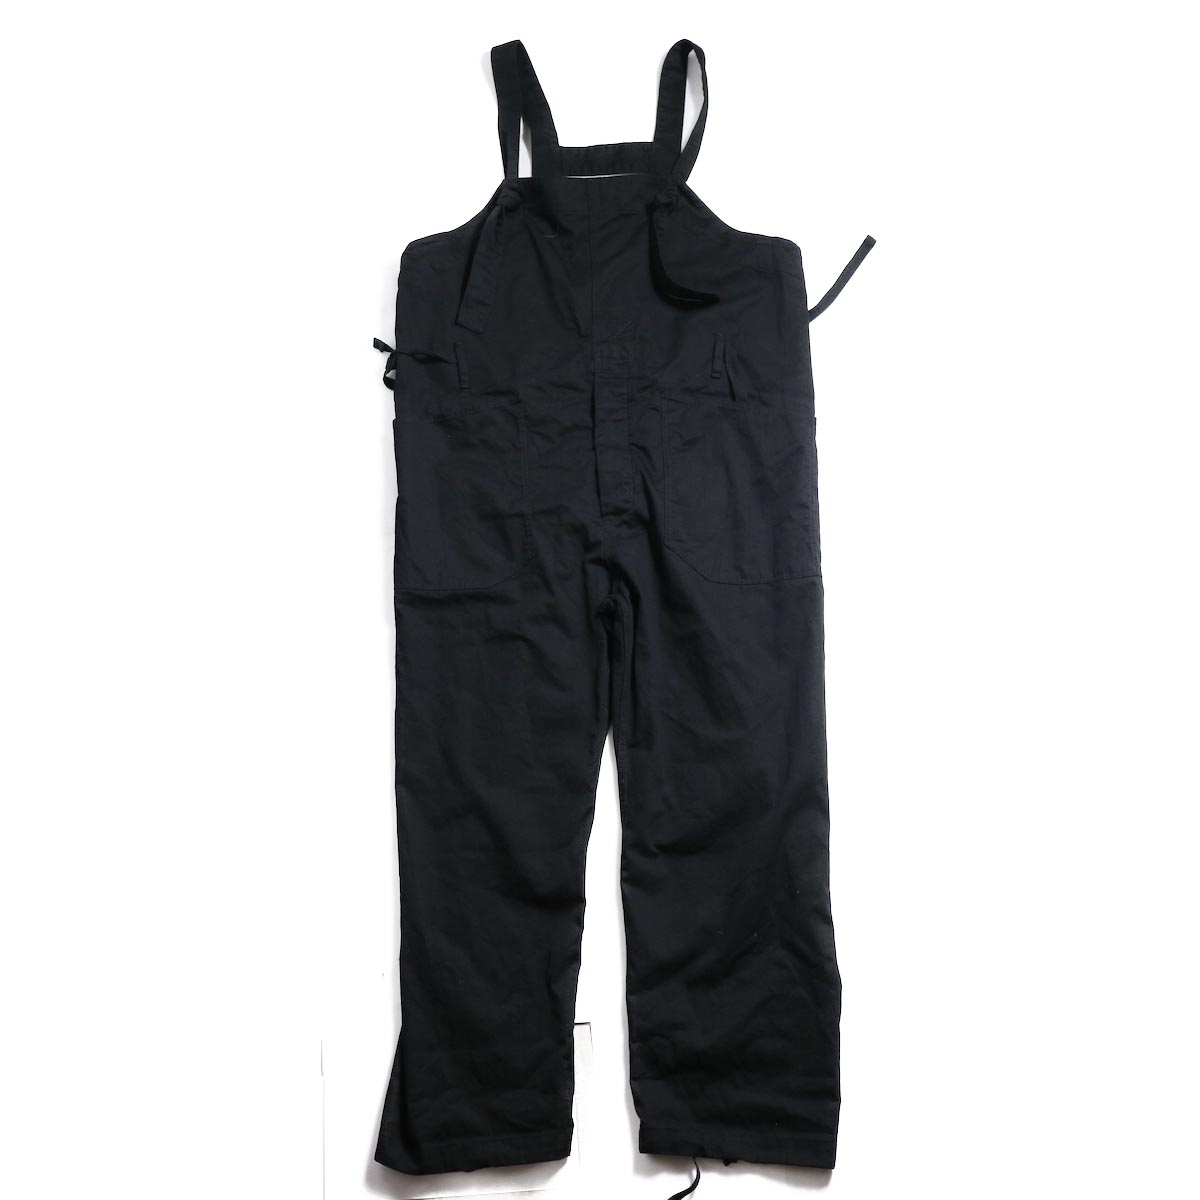 ENGINEERED GARMENTS / Overalls -6.5oz Flat Twill